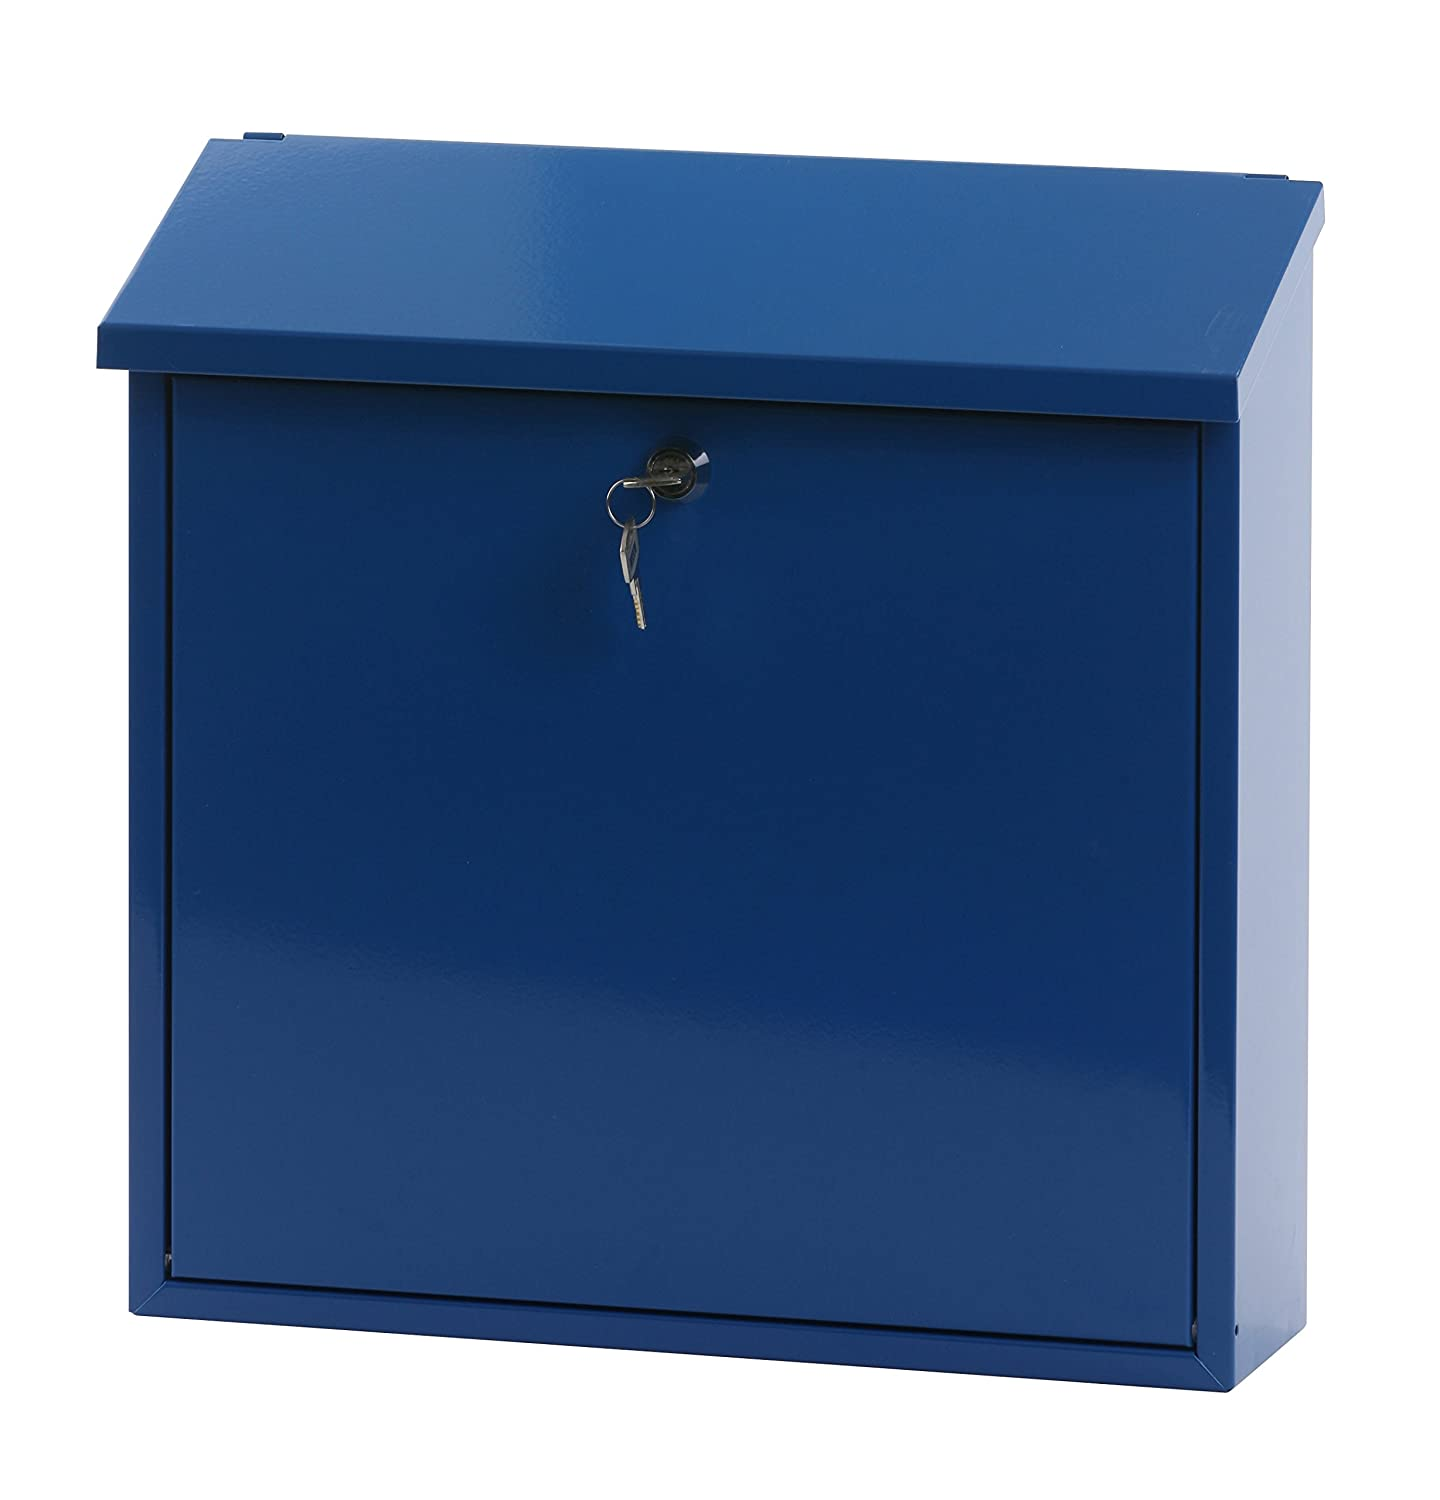 V-Part Wall-Mounted Post Box Height 37 cm Blue VB 440050